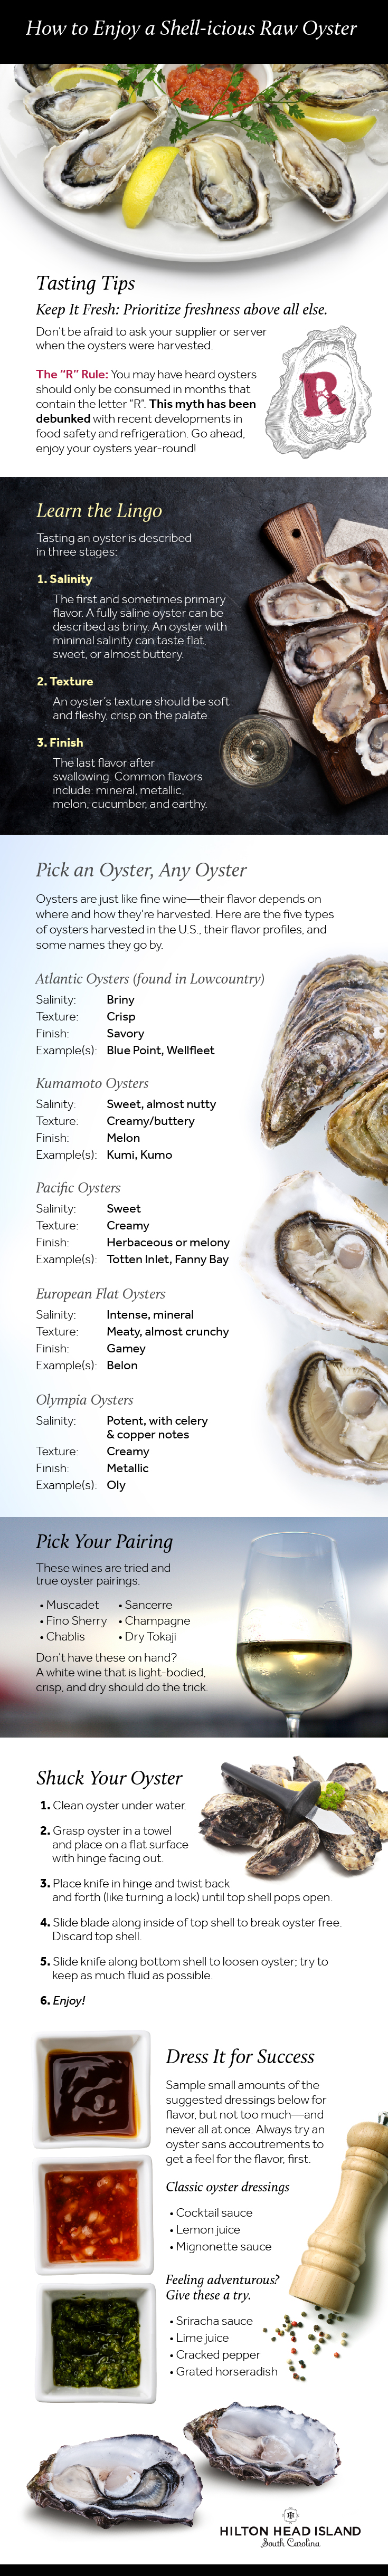 Infographic about how to enjoy a raw oyster